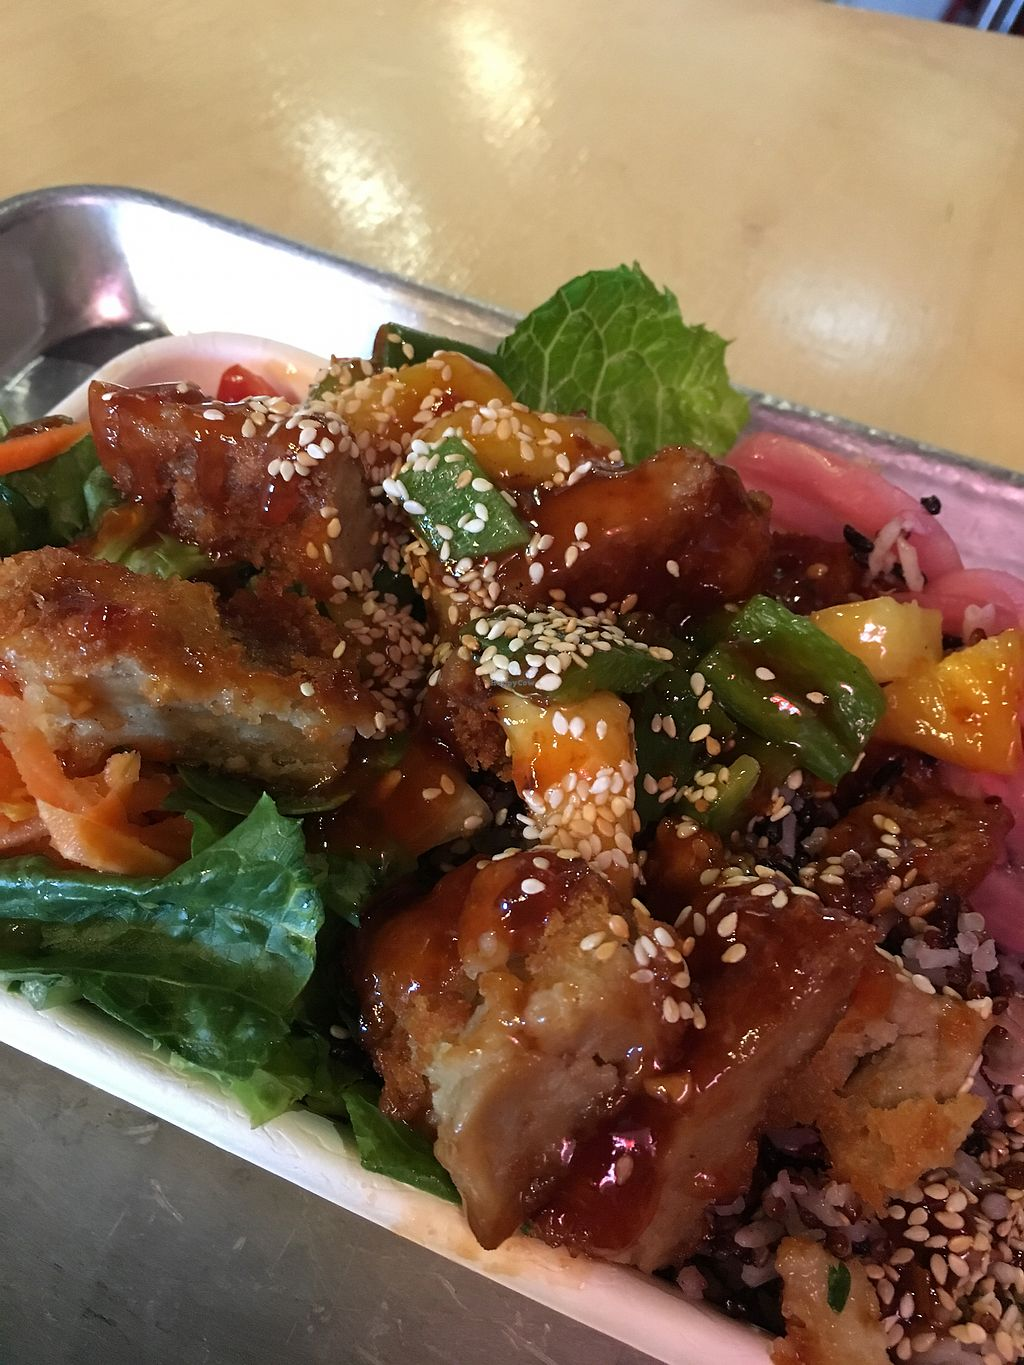 """Photo of Pow Pow  by <a href=""""/members/profile/laurastill"""">laurastill</a> <br/>Natalie Porkman - flavorful, filling, delicious, vegan <br/> September 28, 2017  - <a href='/contact/abuse/image/96349/309491'>Report</a>"""